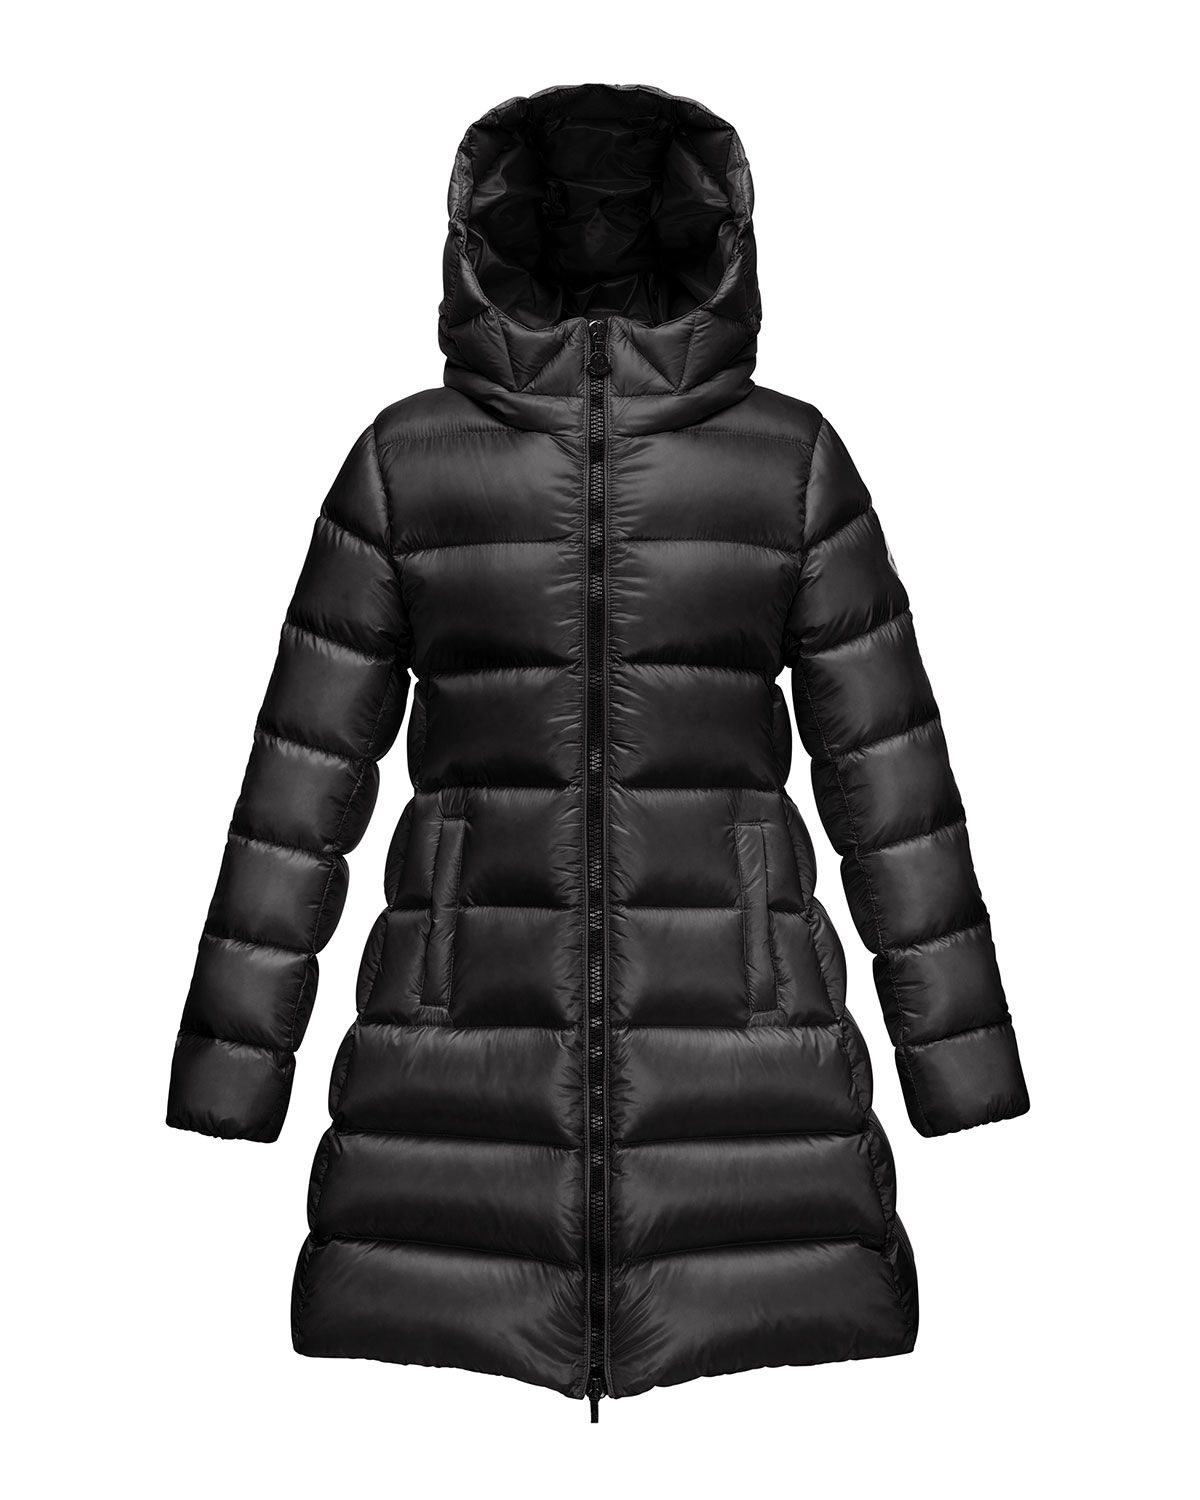 7710b4e9d Z1A4Z Burberry Long Puffer Coat with Fur-Trim, Black, 4Y-14Y | for ...